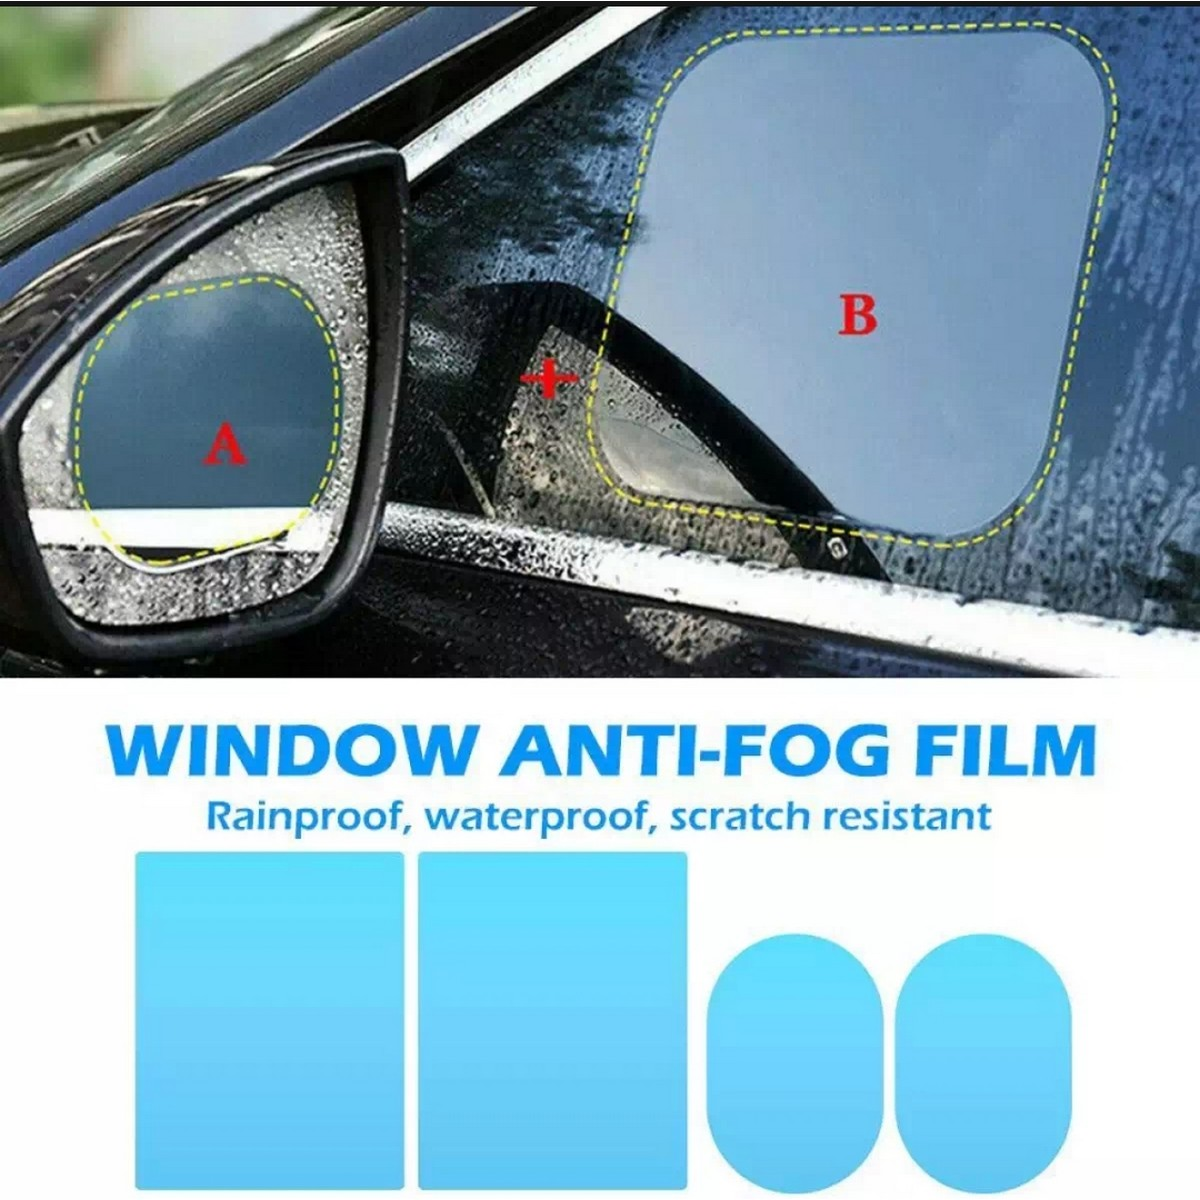 4Pc Anti Fog Window Films For All Cars Water Proof,  Rain Proof,  Sacratch resistant